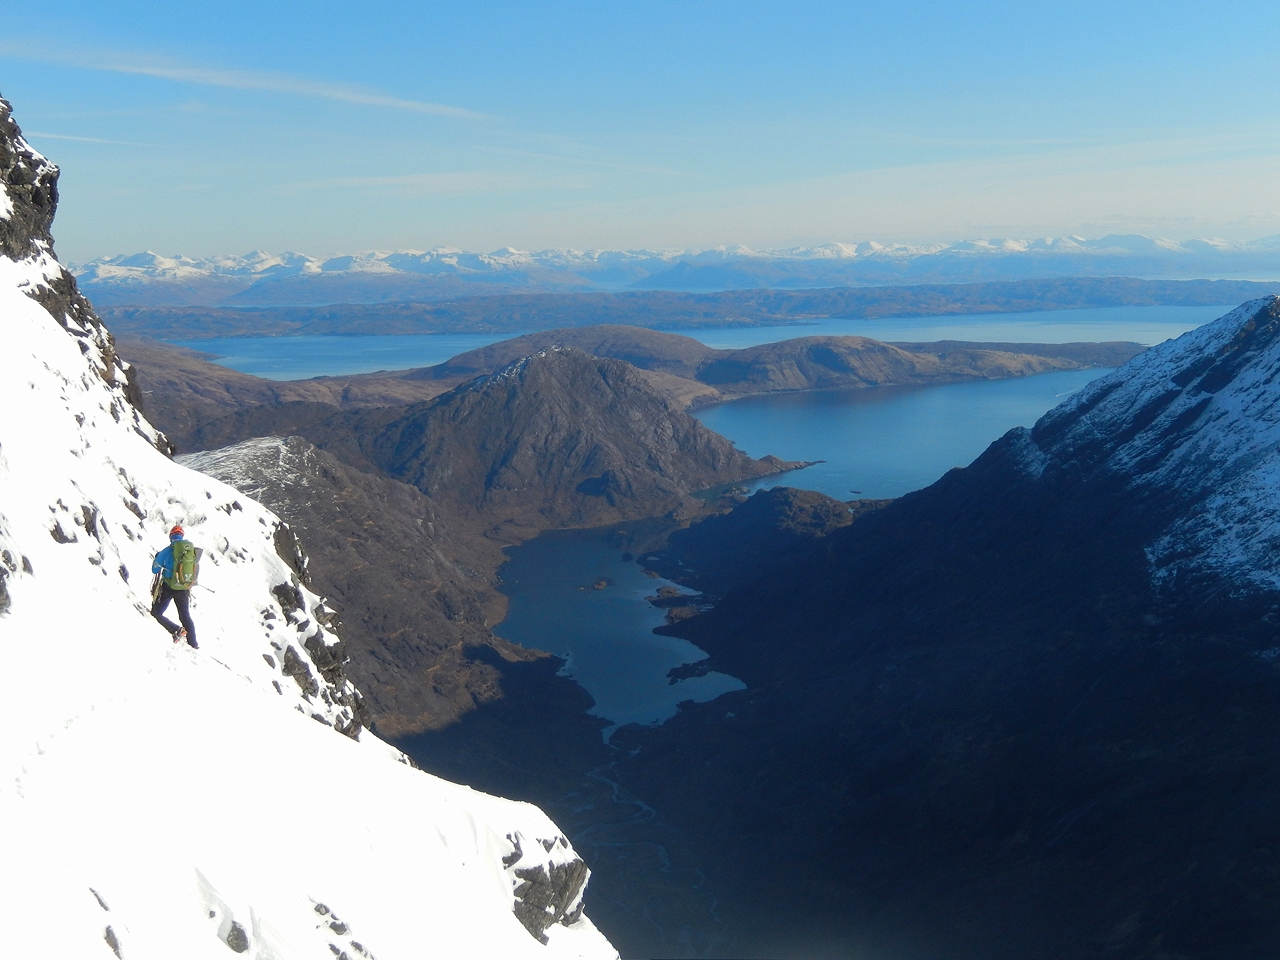 Stunning views down to Loch Coruisk